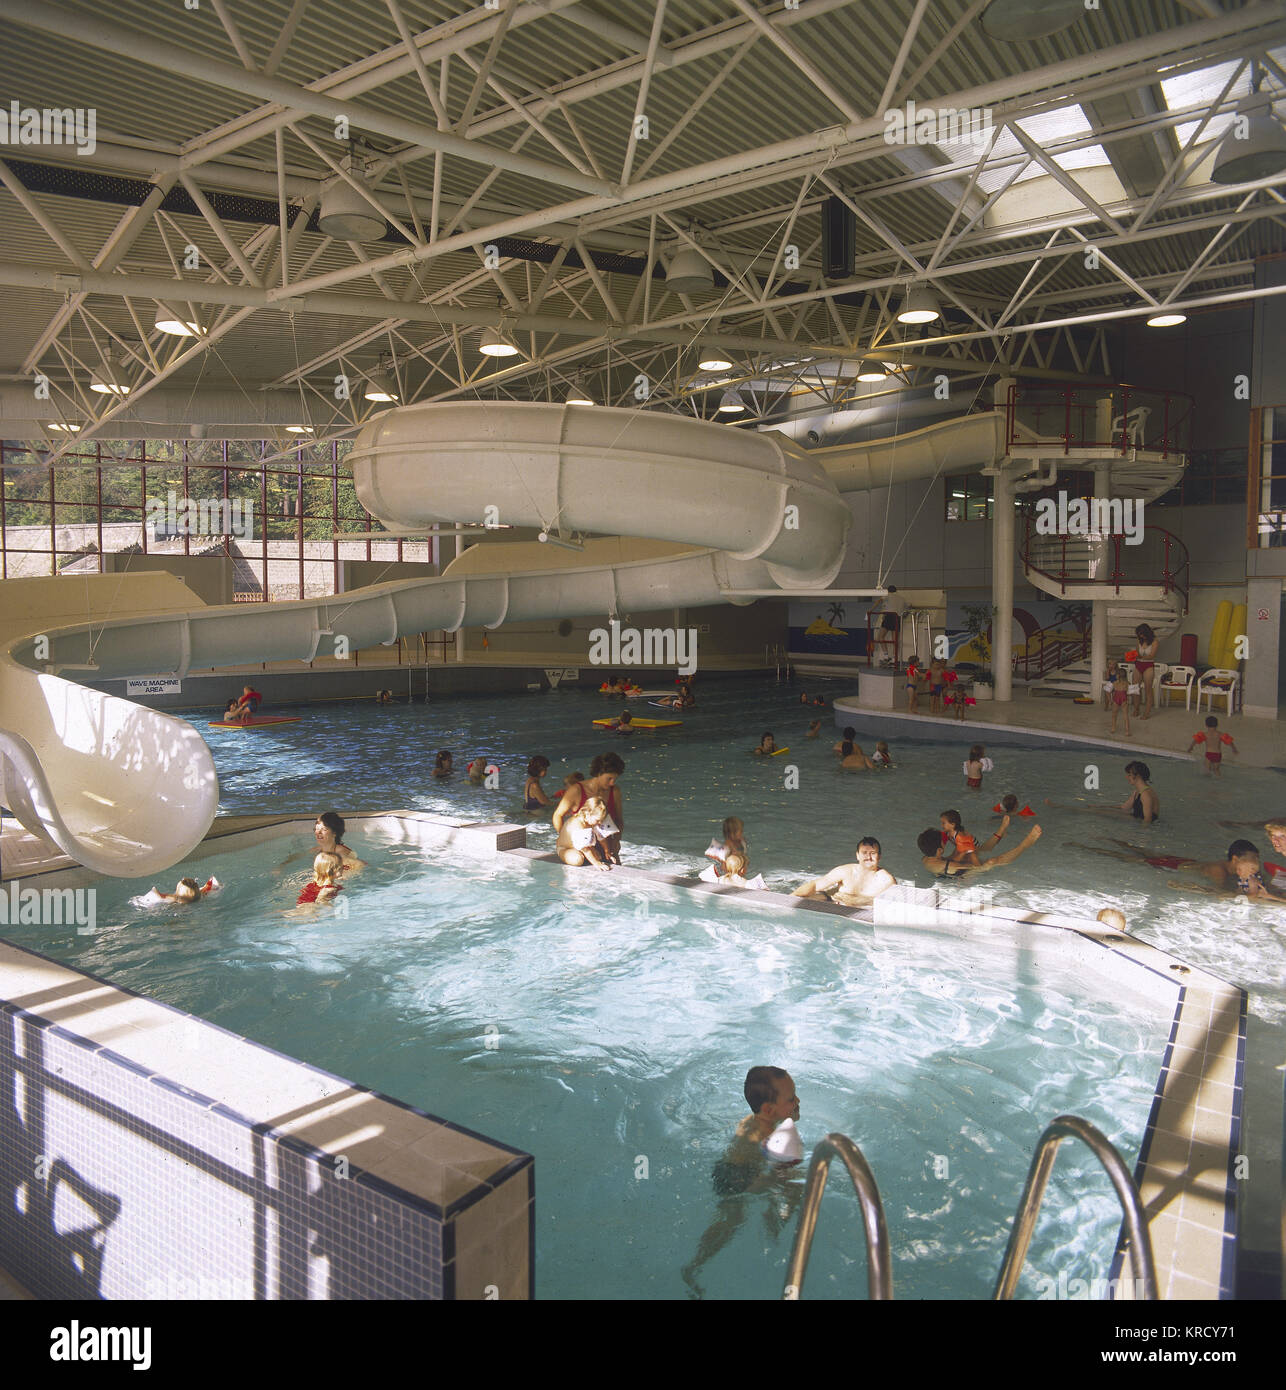 An indoor swimming pool, the  kind that has a wave machine  and rapids!        Date: 1990 - Stock Image